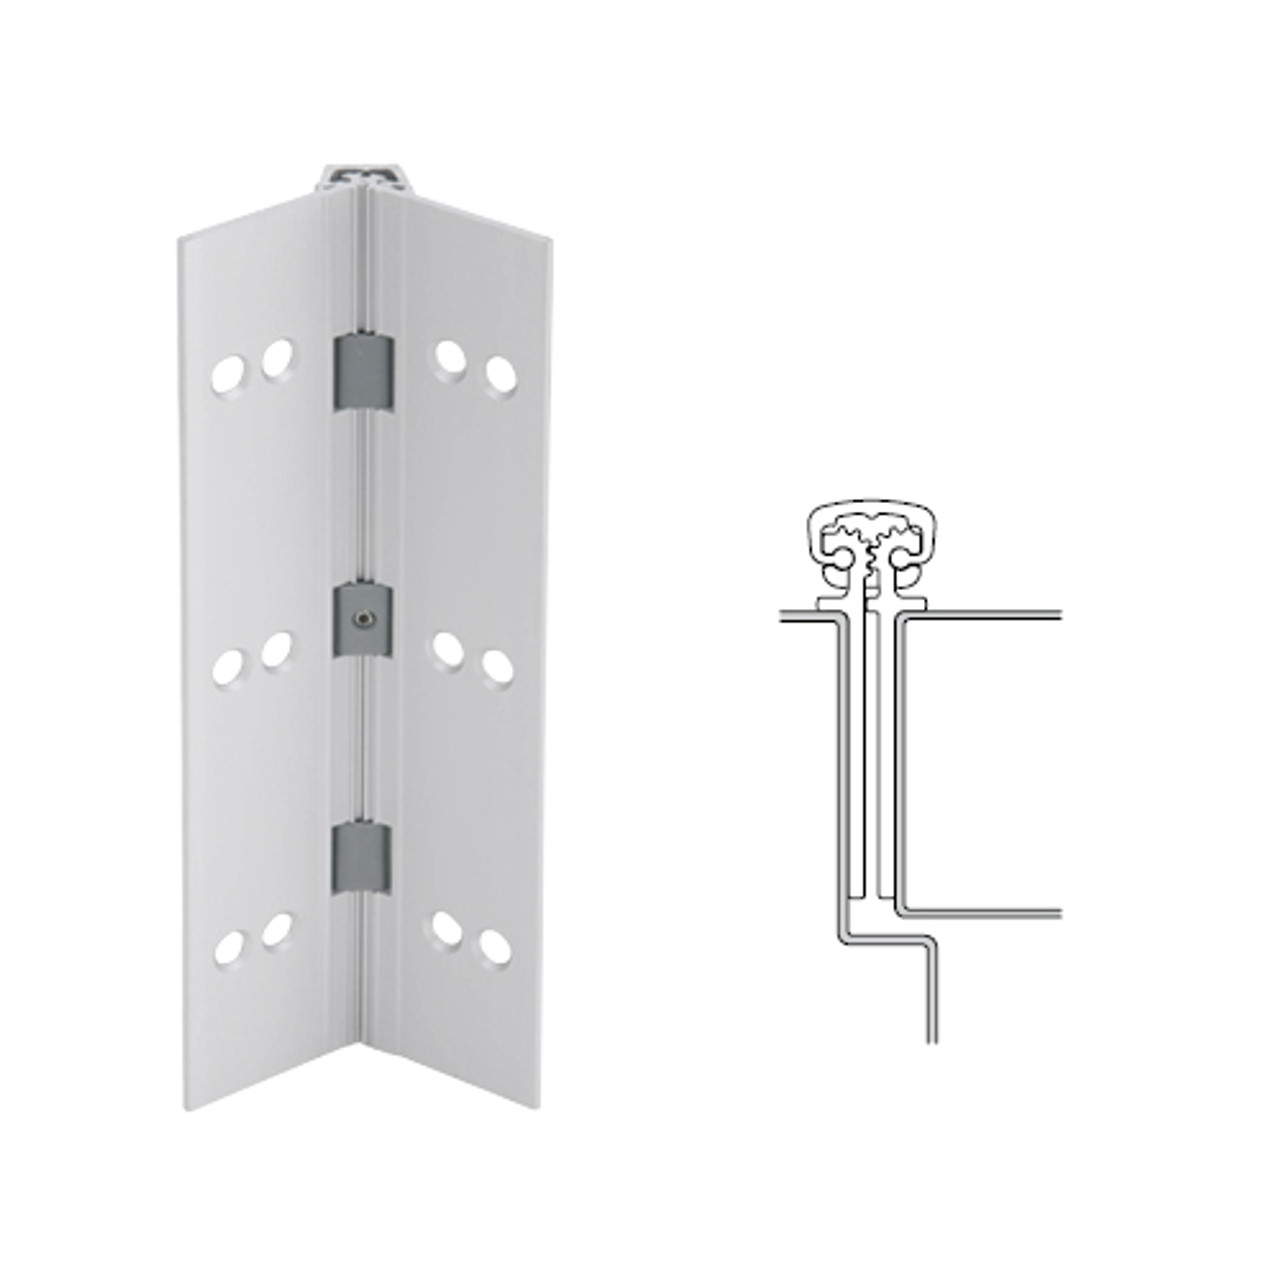 027XY-US28-85-SECWDHM IVES Full Mortise Continuous Geared Hinges with Security Screws - Hex Pin Drive in Satin Aluminum